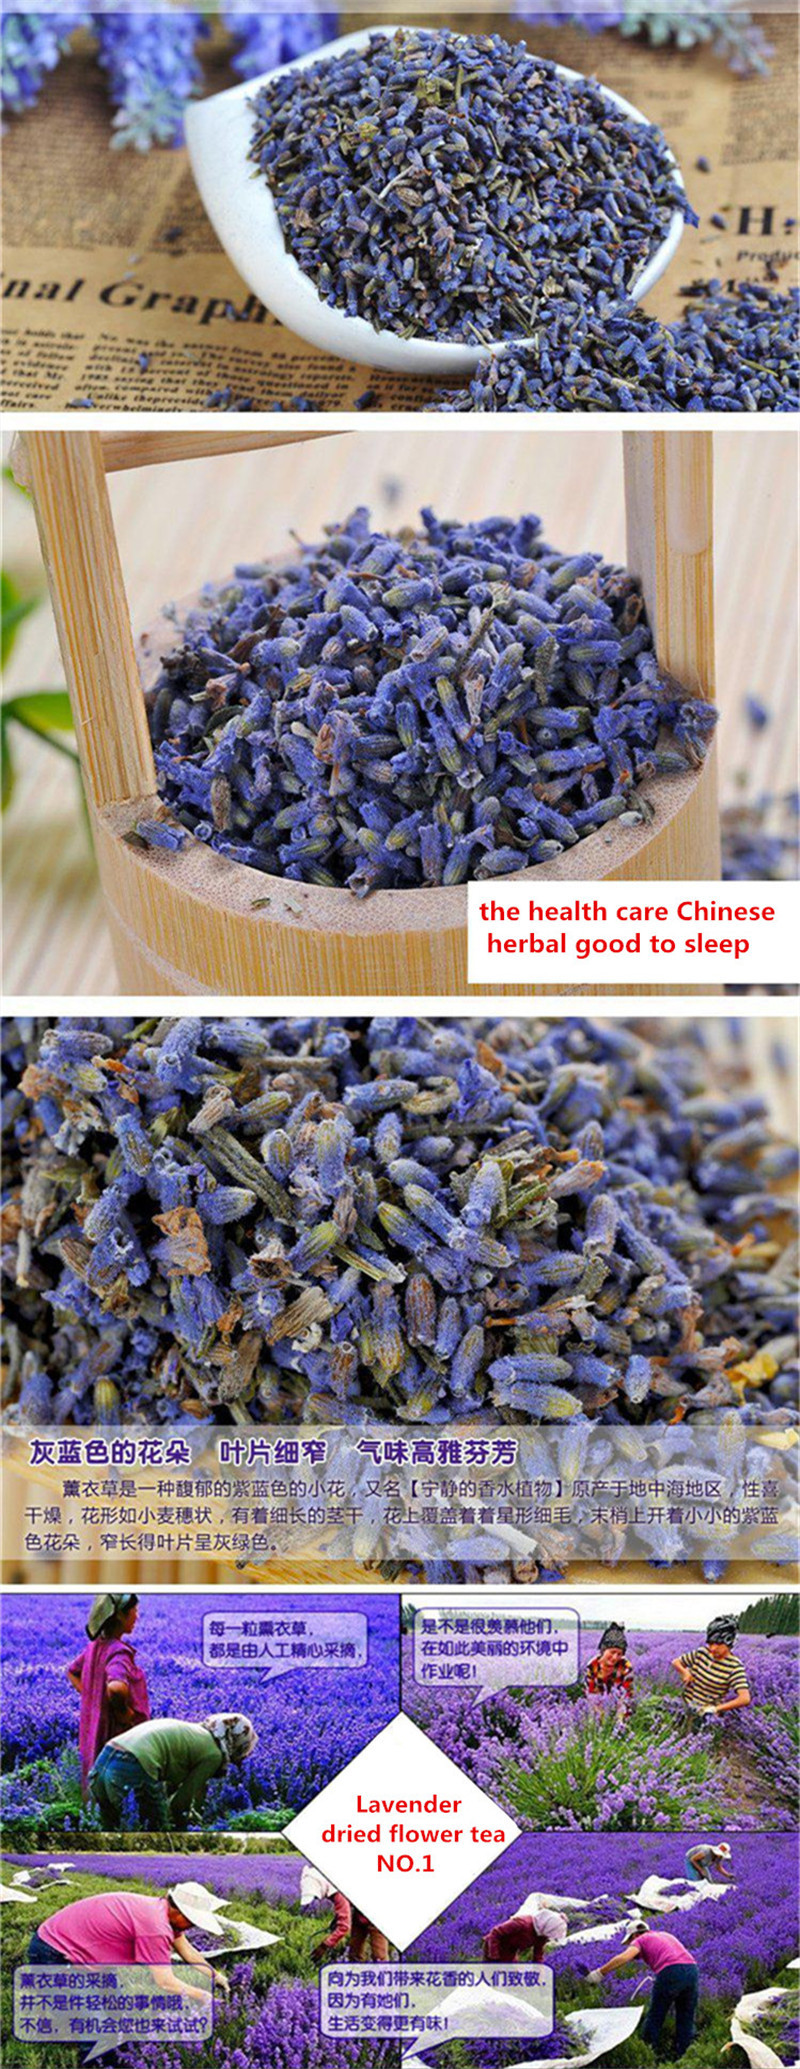 50g Lavender dried flower tea yangxinanshen sleeping the health care Chinese herbal gift flower tea herb bag good to sleep